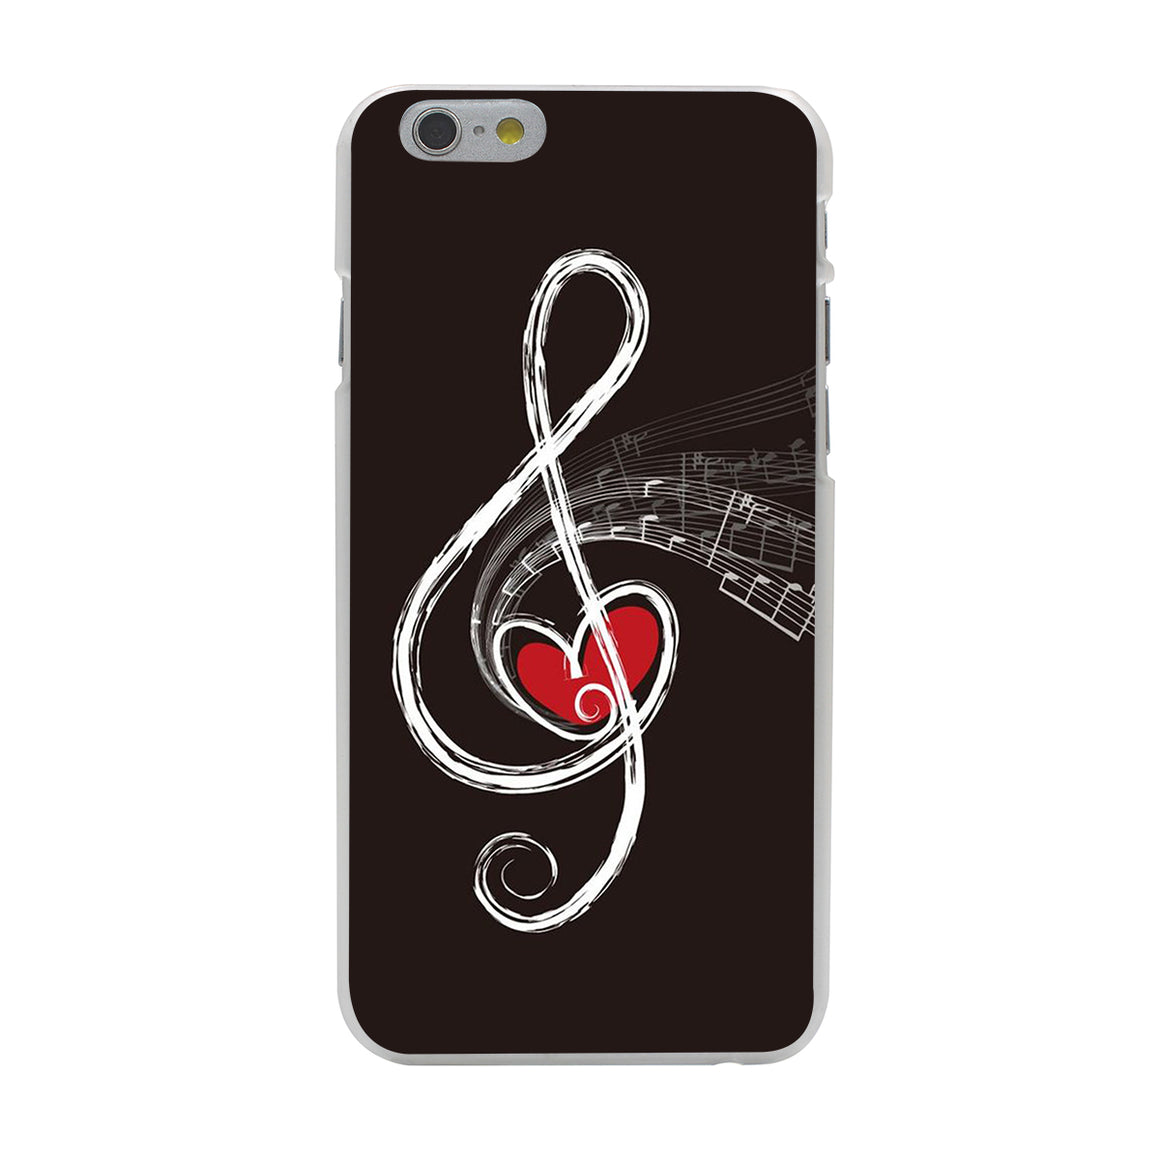 Musical Note with Heart iPhone Case/Cover